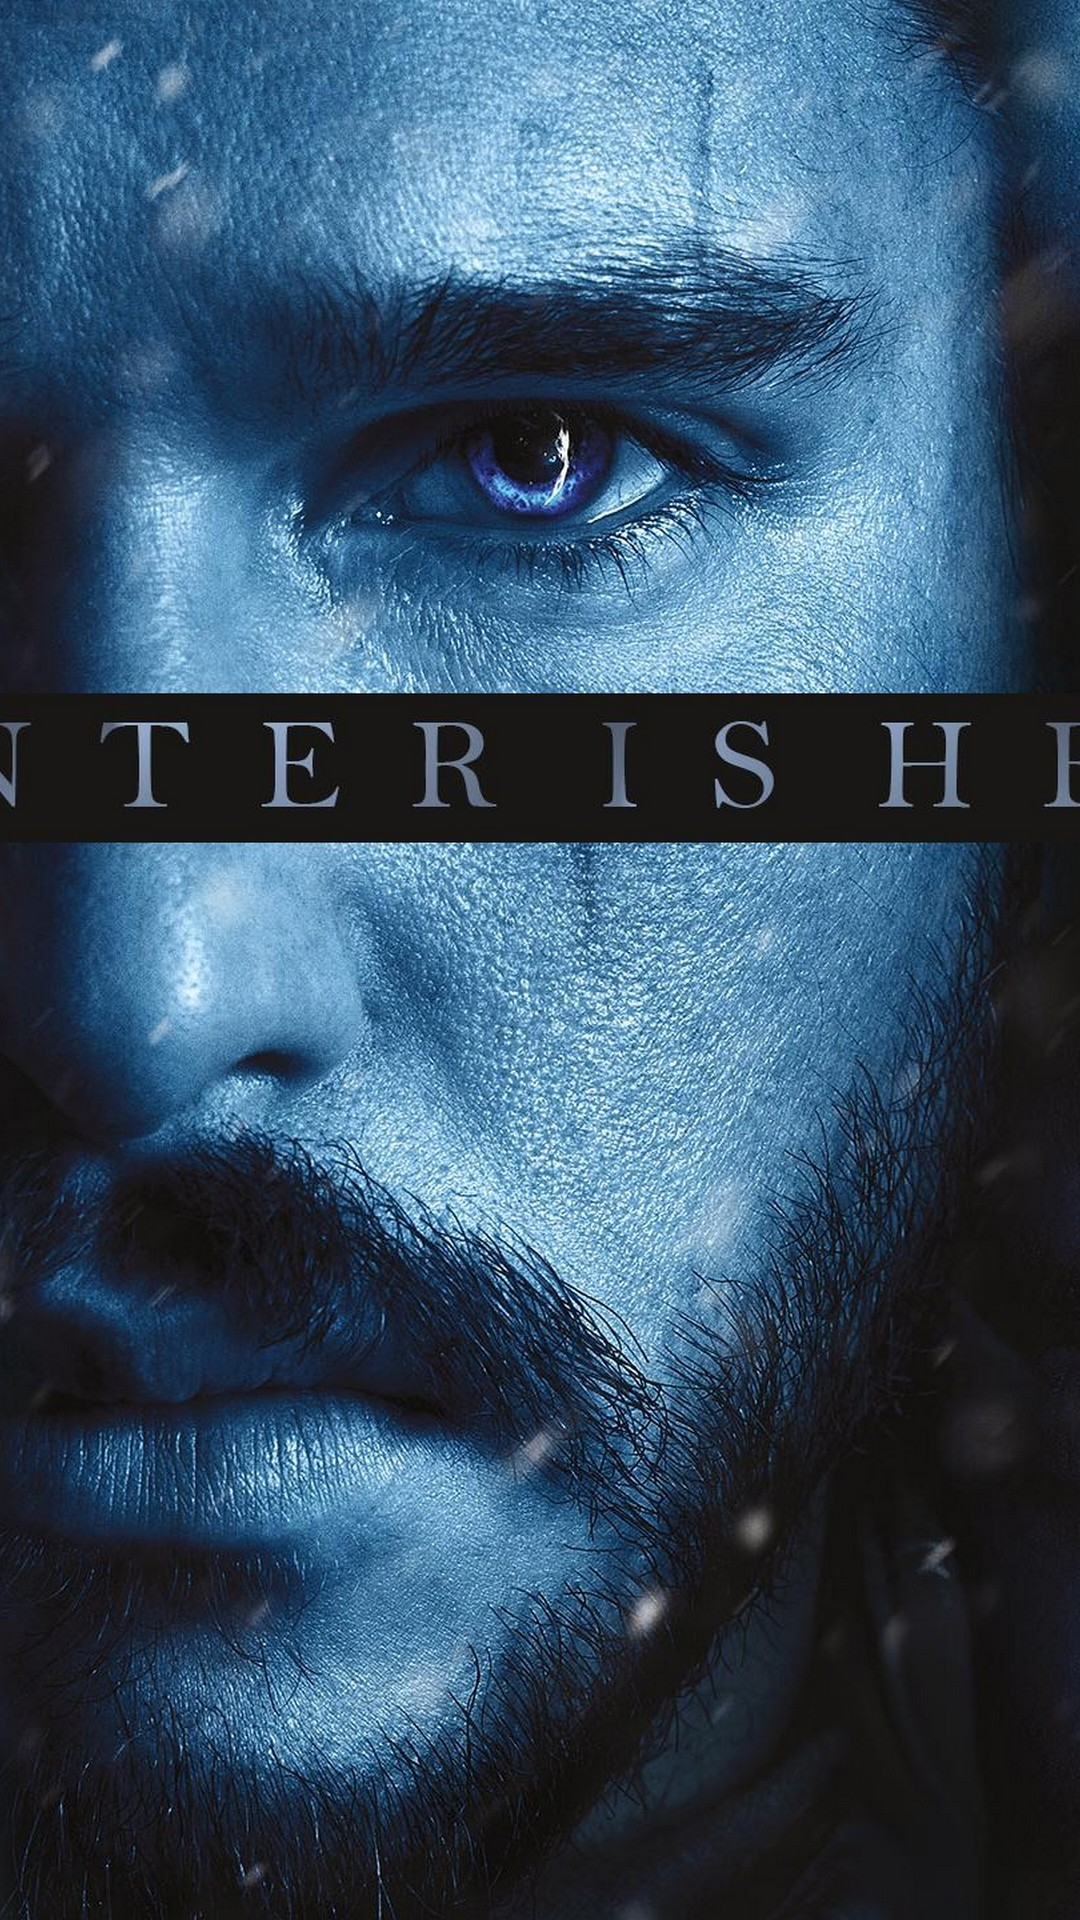 Game Of Thrones 8 Season Wallpaper Android With High-resolution - High Resolution Game Of Thrones , HD Wallpaper & Backgrounds